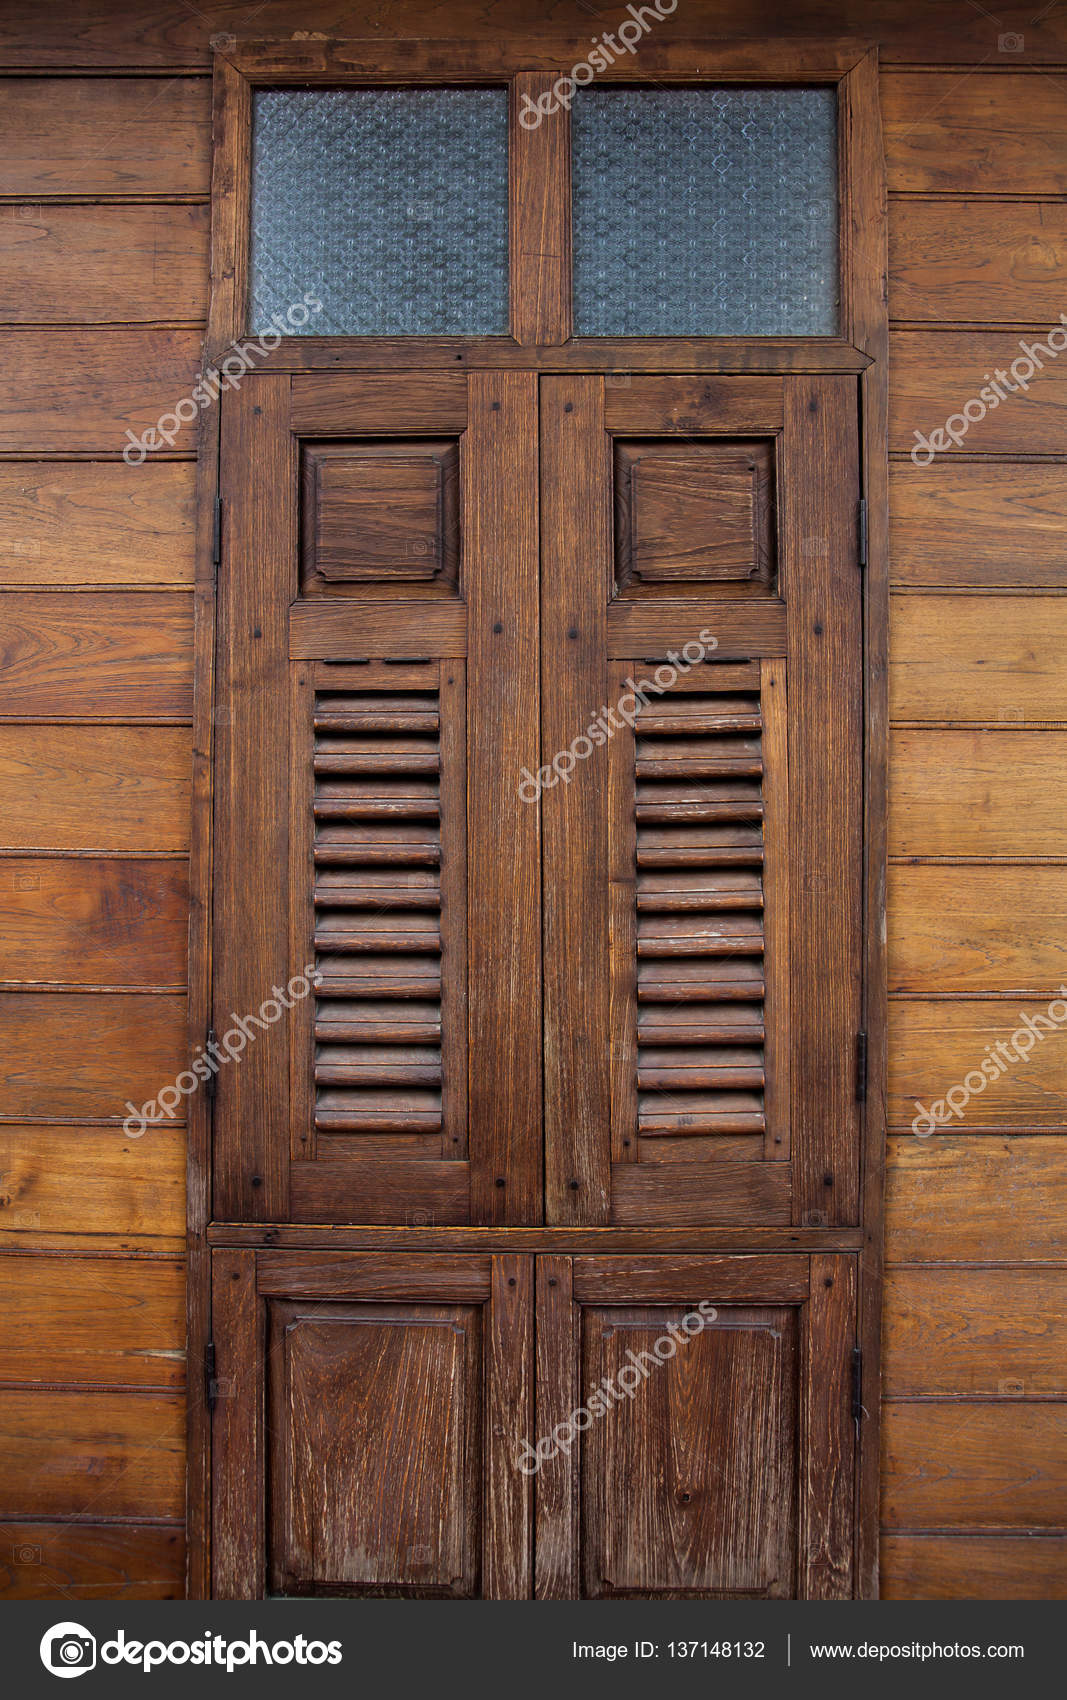 Old wooden window stock photo vkafitigmail 137148132 windows made of old wood old wood textures backgrounds abstract backgrounds photo by vkafitigmail freerunsca Images